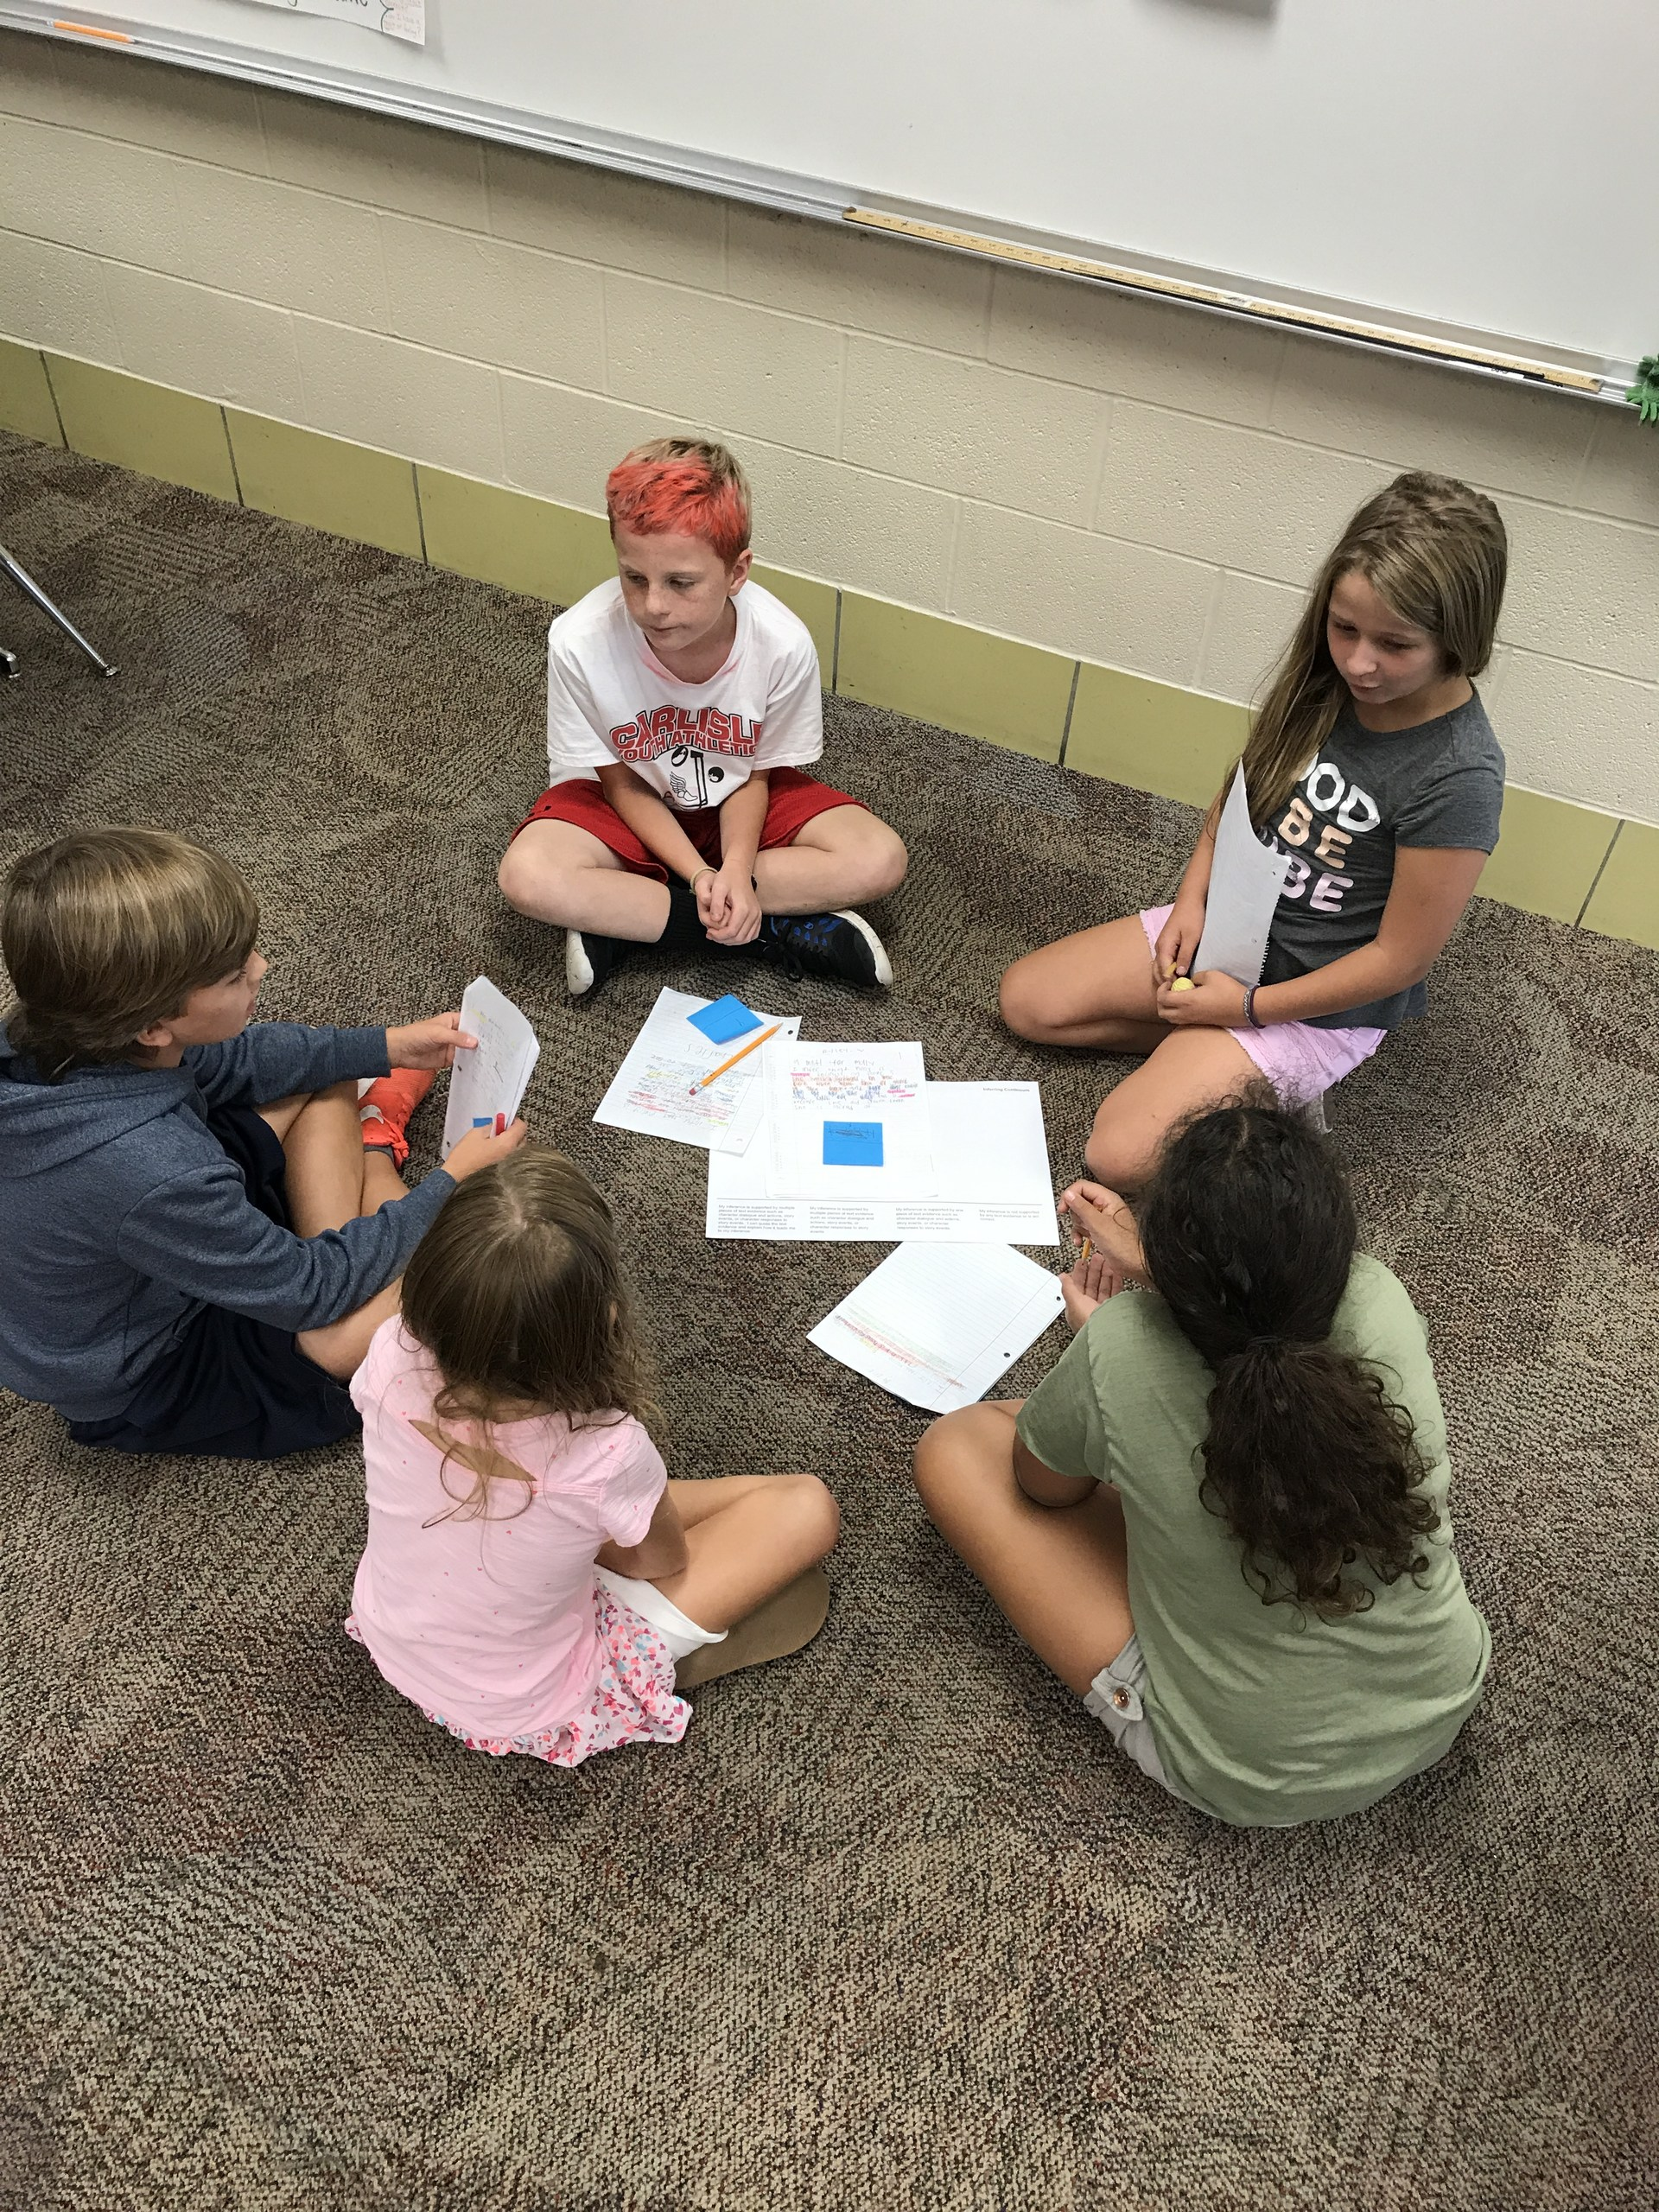 Working in continuum groups